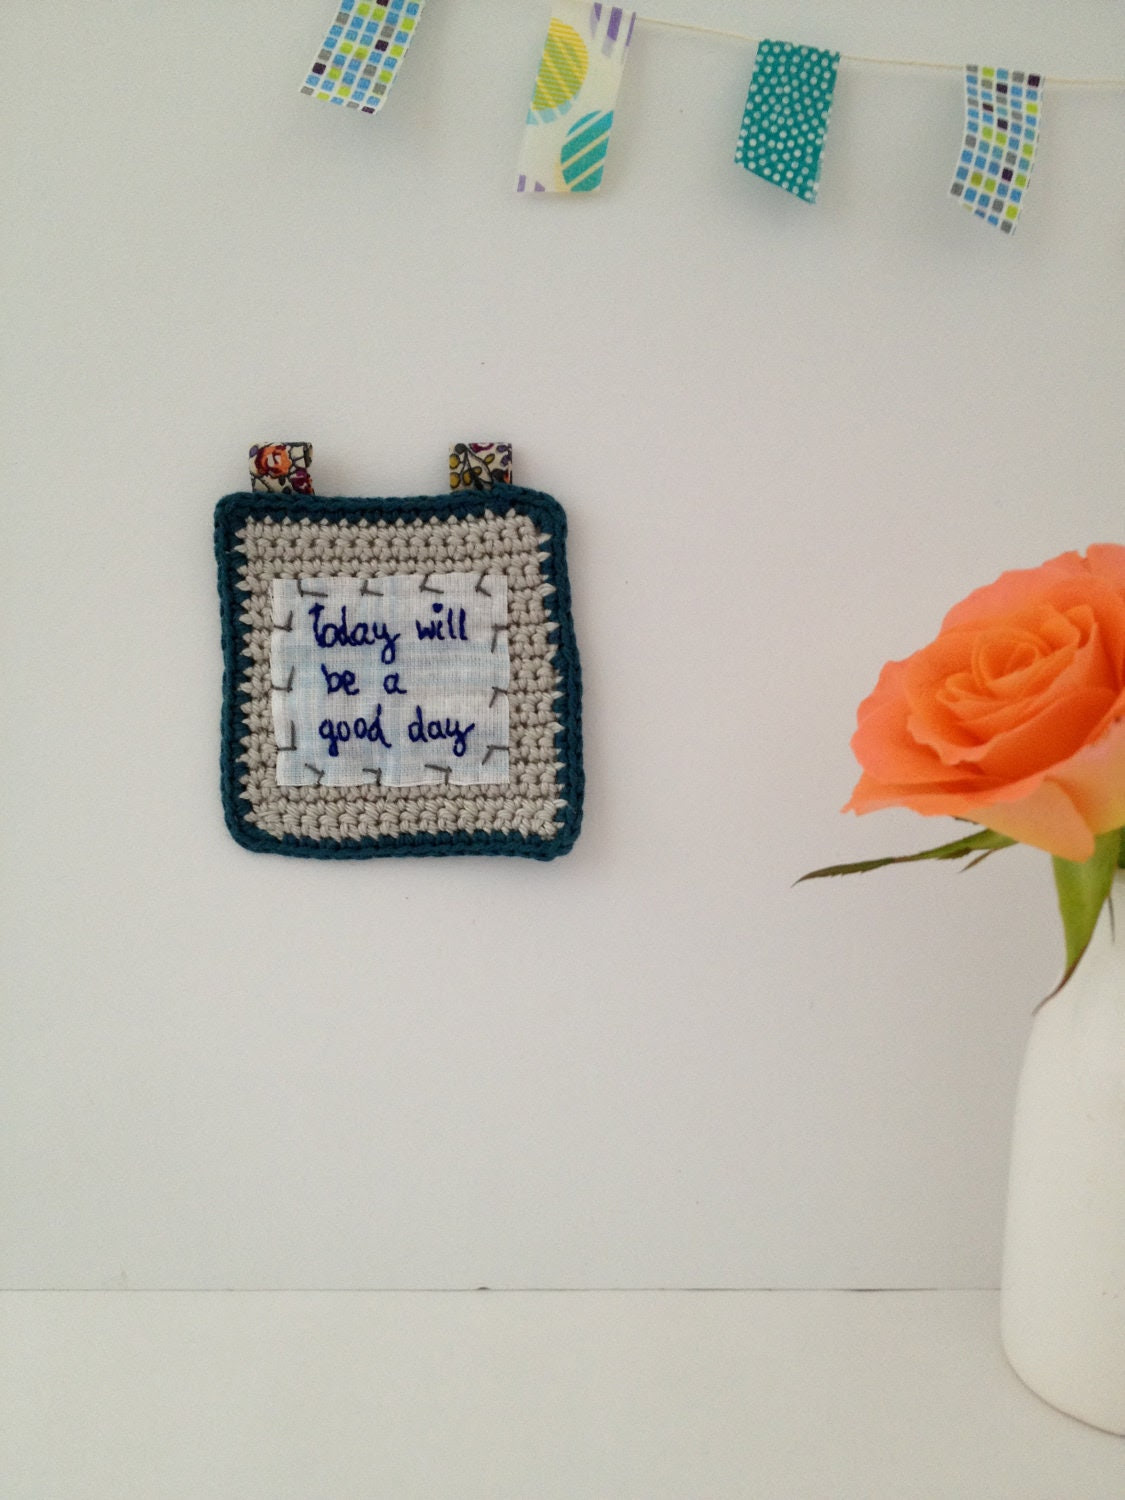 Crocheted Square with Embroidered Reminder - giovabrusa